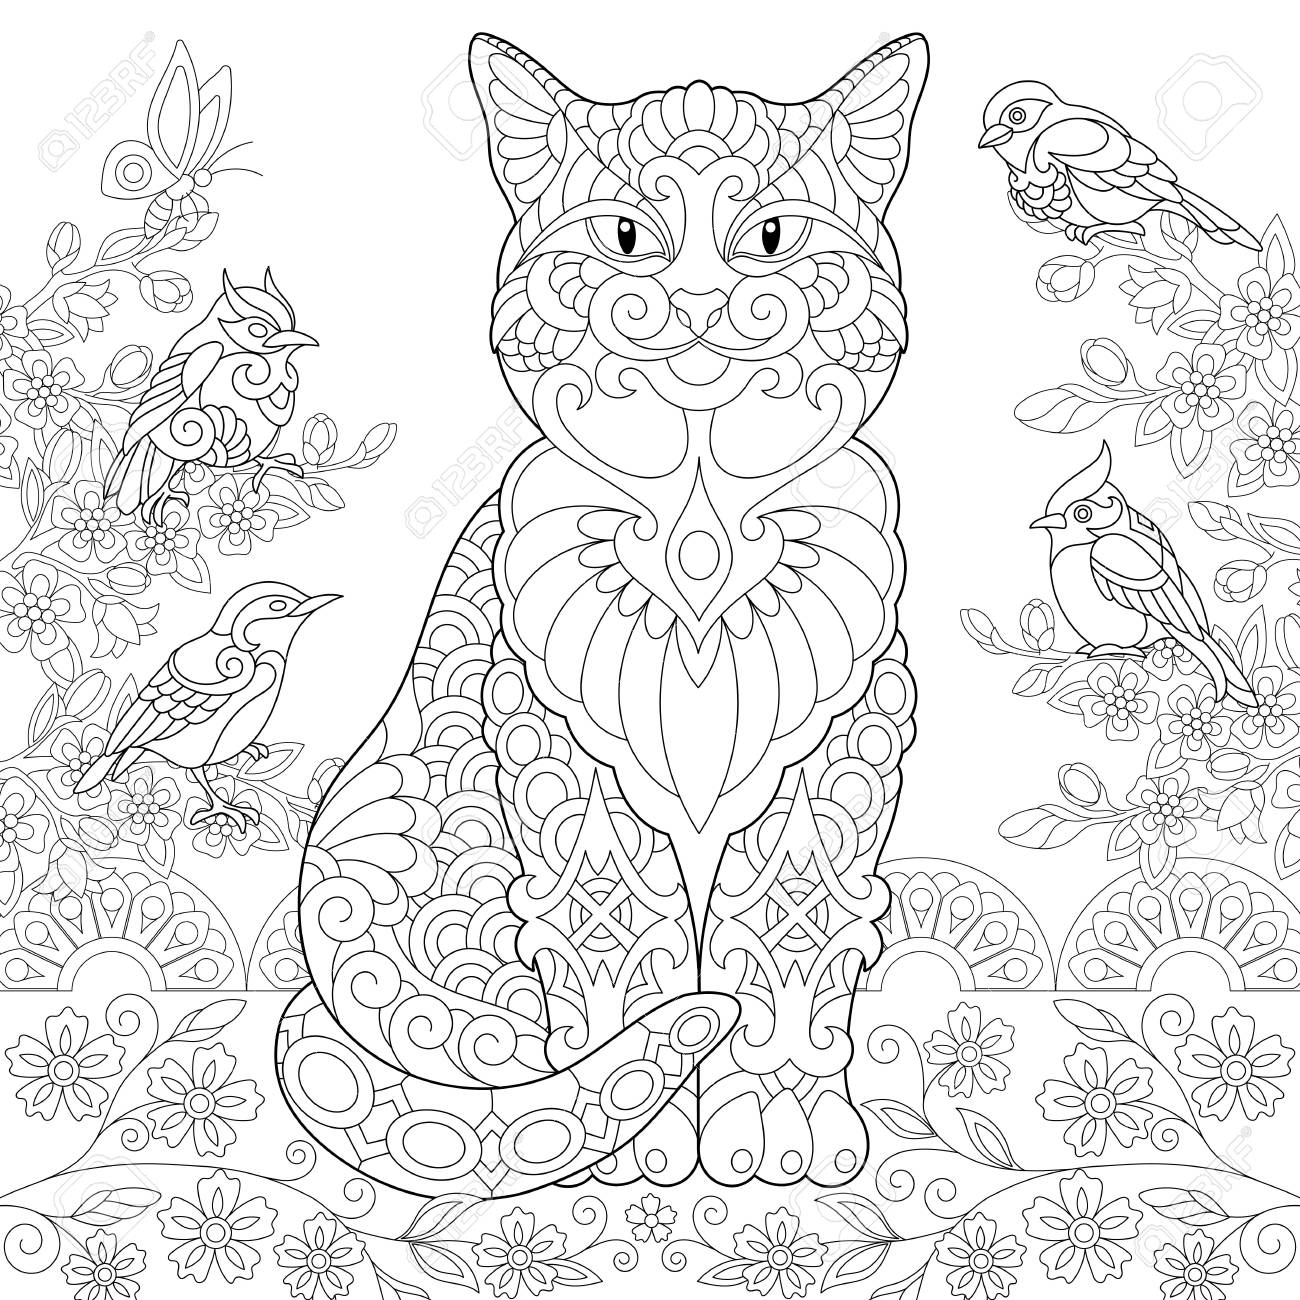 Cat And Spring Birds In The Garden Coloring Page Colouring Picture Adult